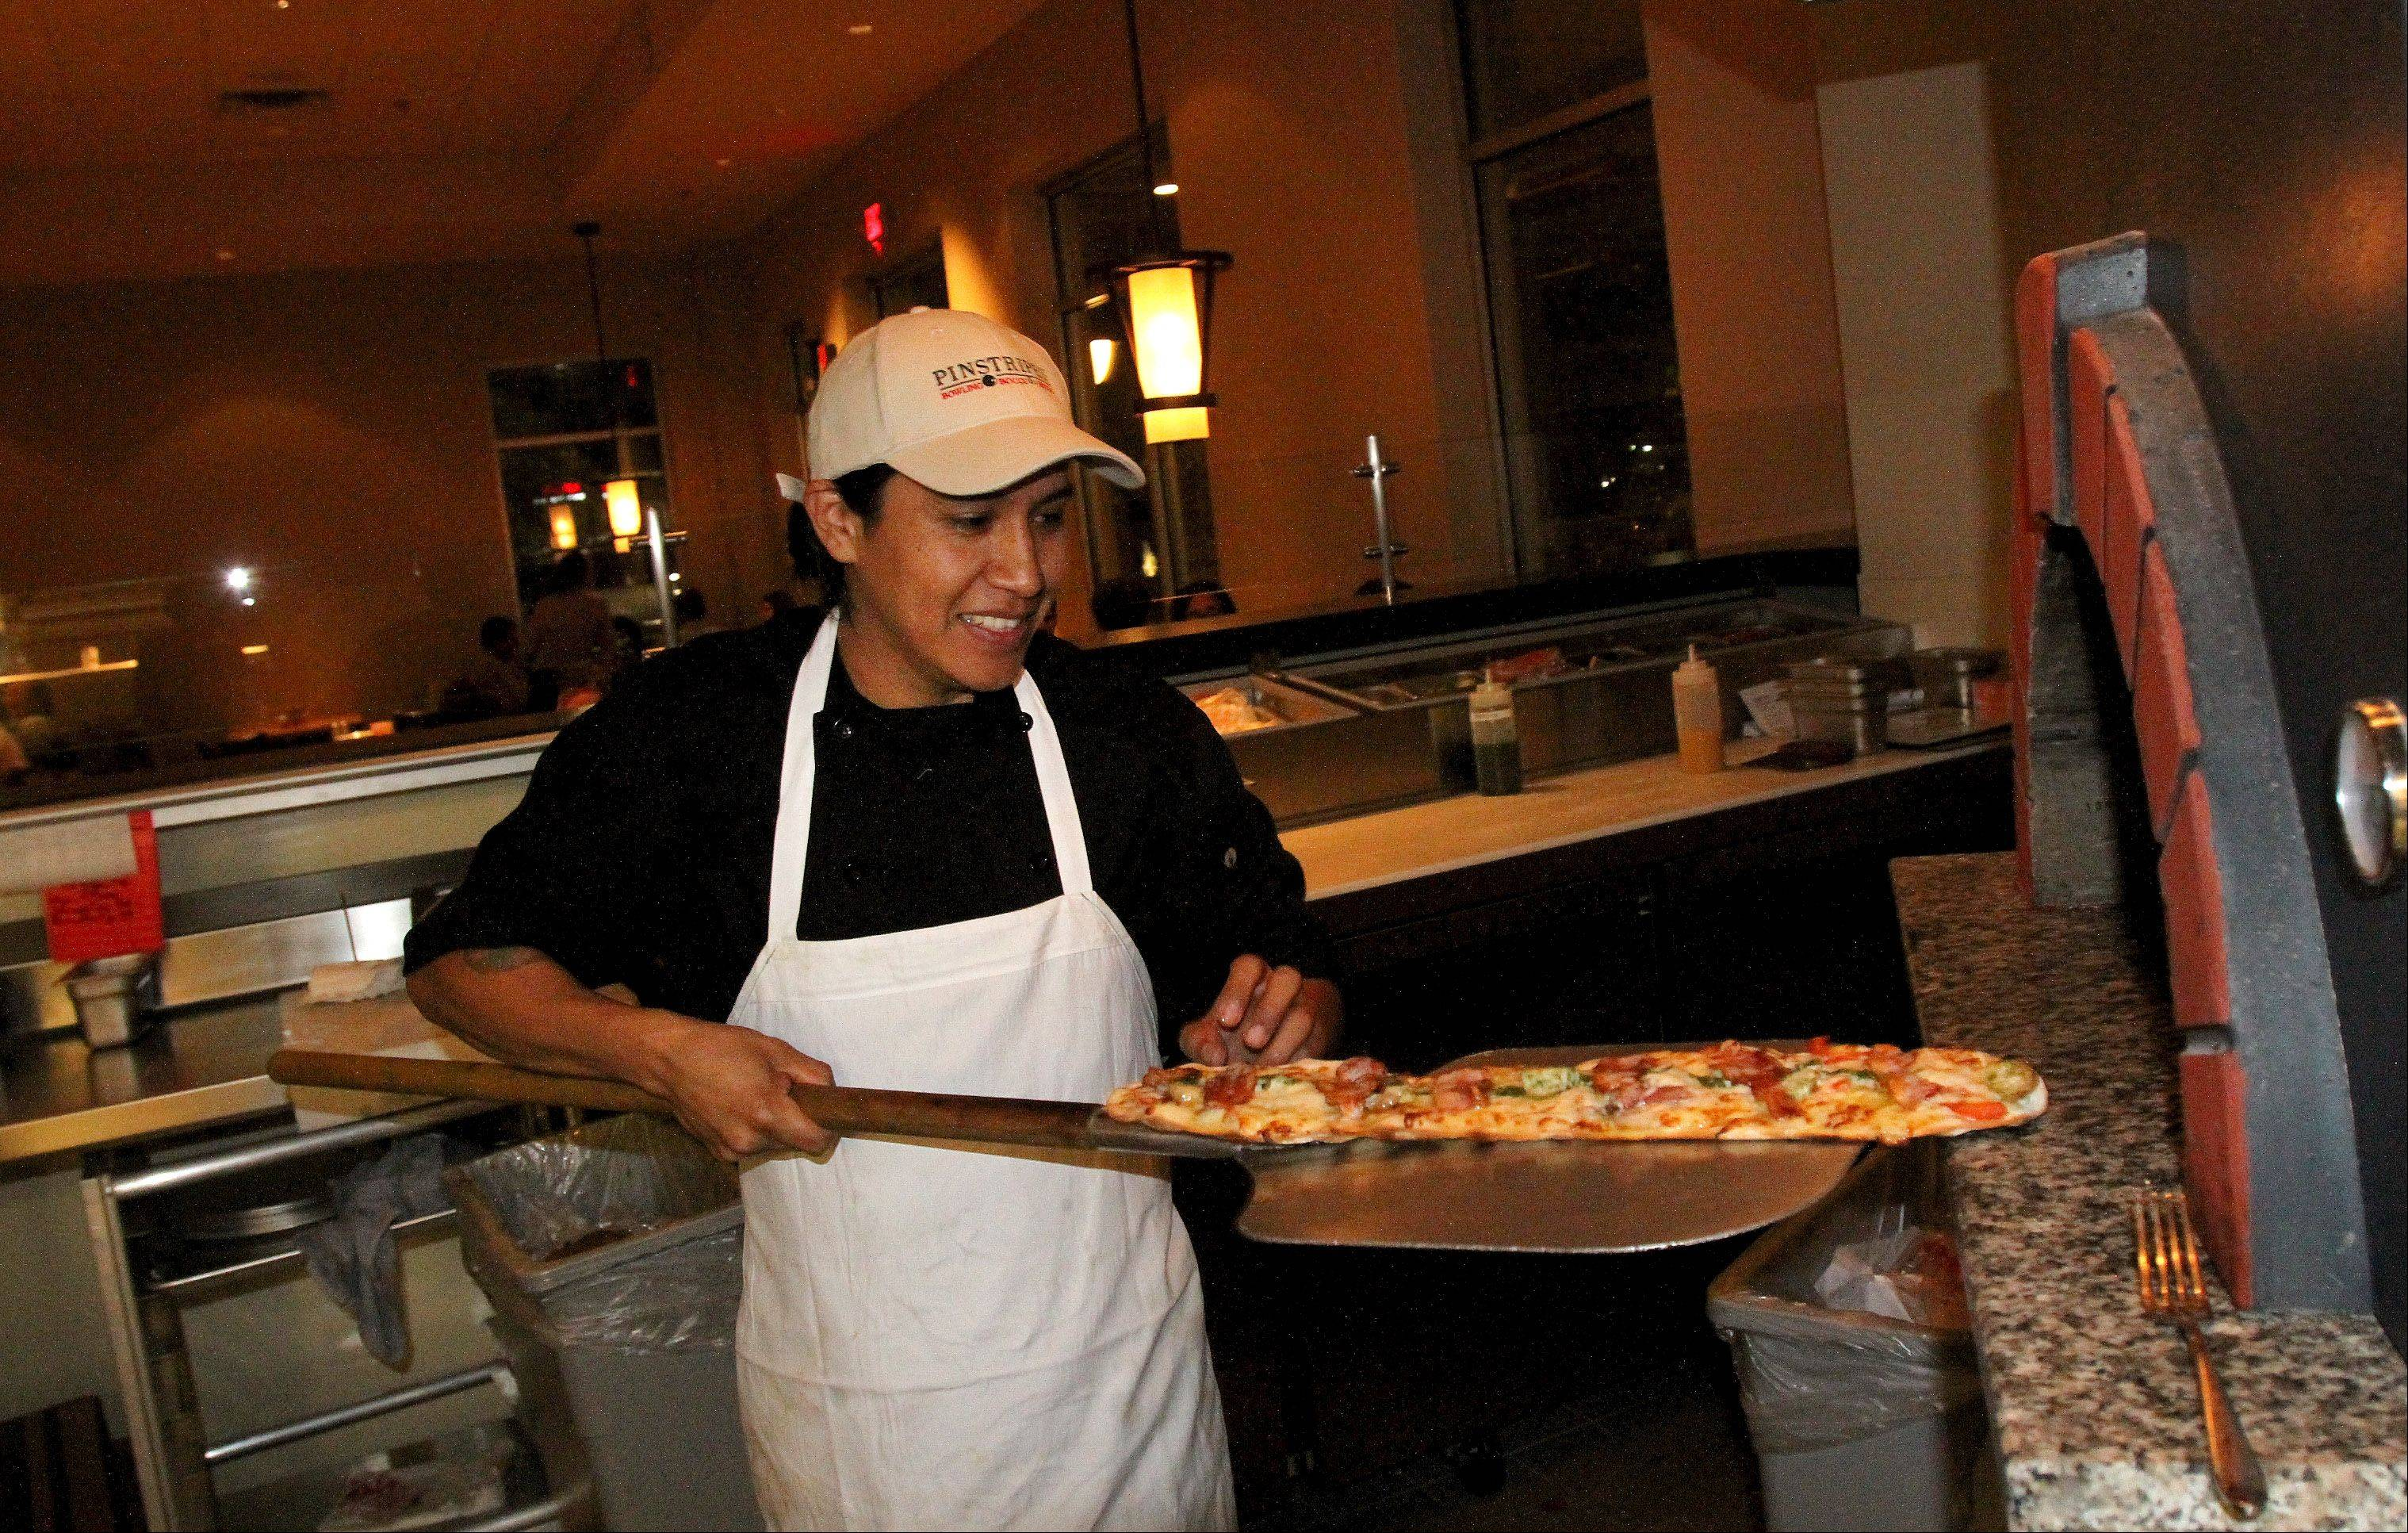 Alberto Salgabo takes a pizza out of the wood-burning oven at Pinstripes.